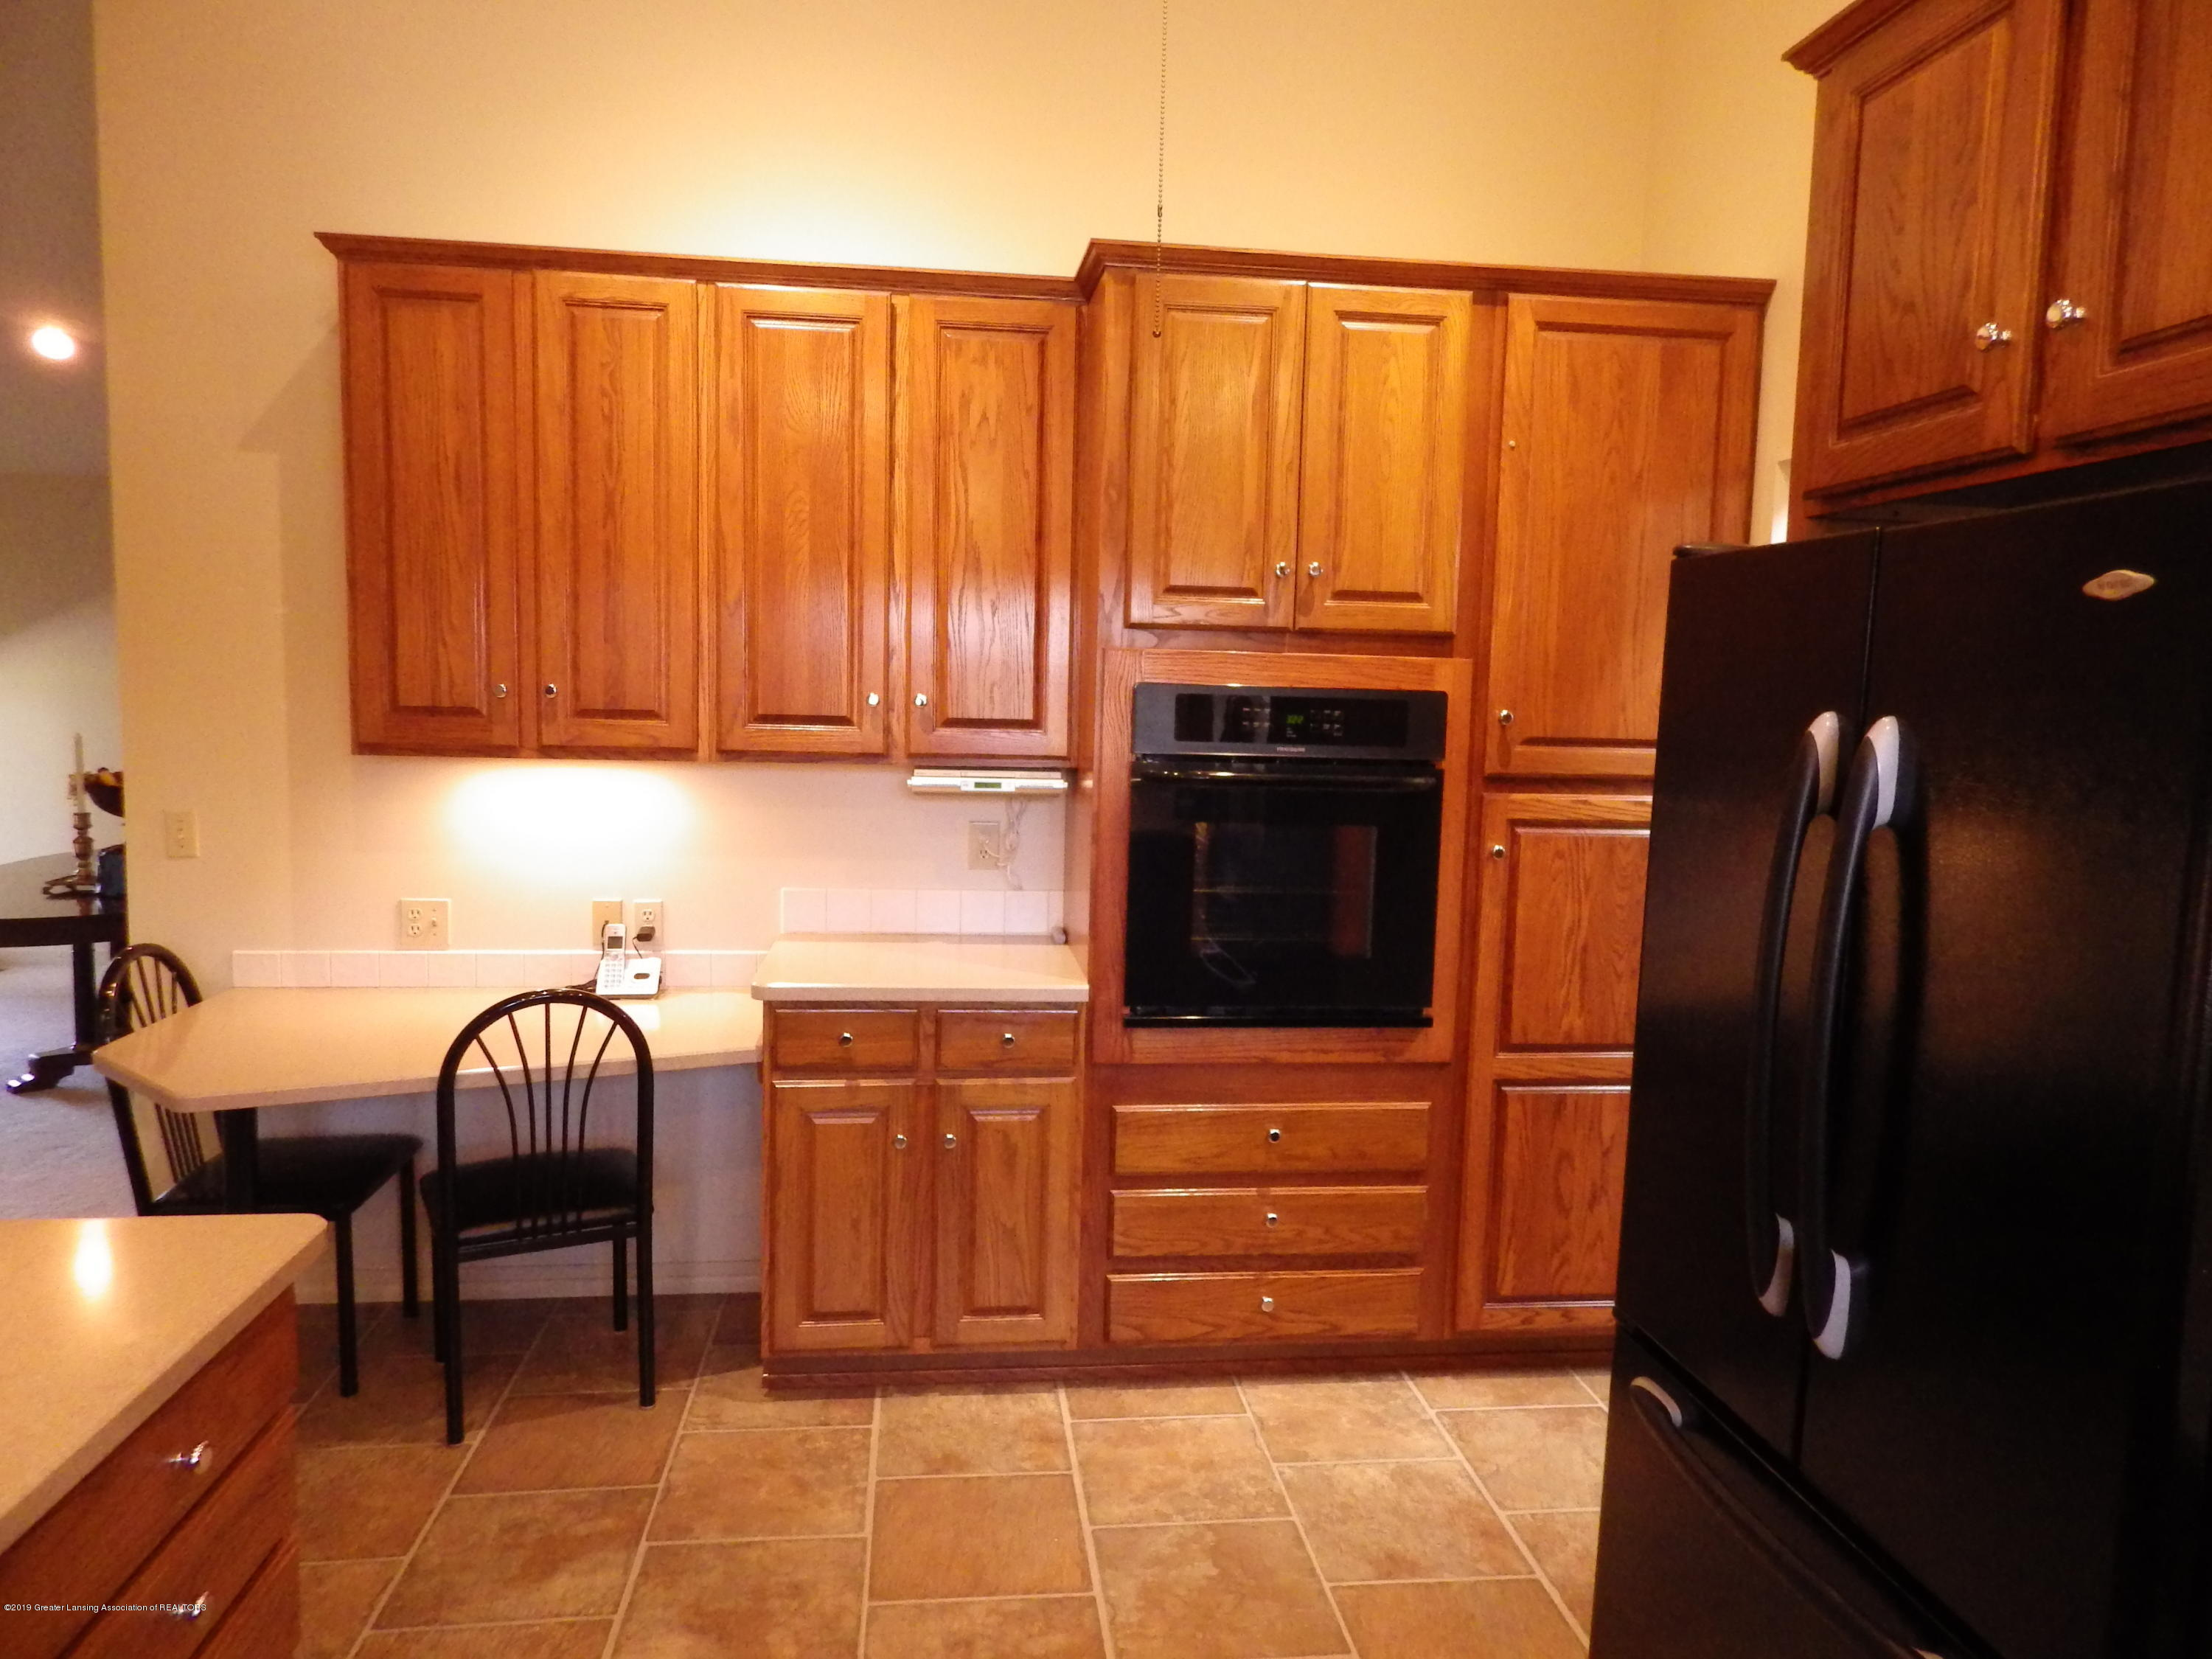 1007 Carlisle Cir - Kitchen 2 - 8